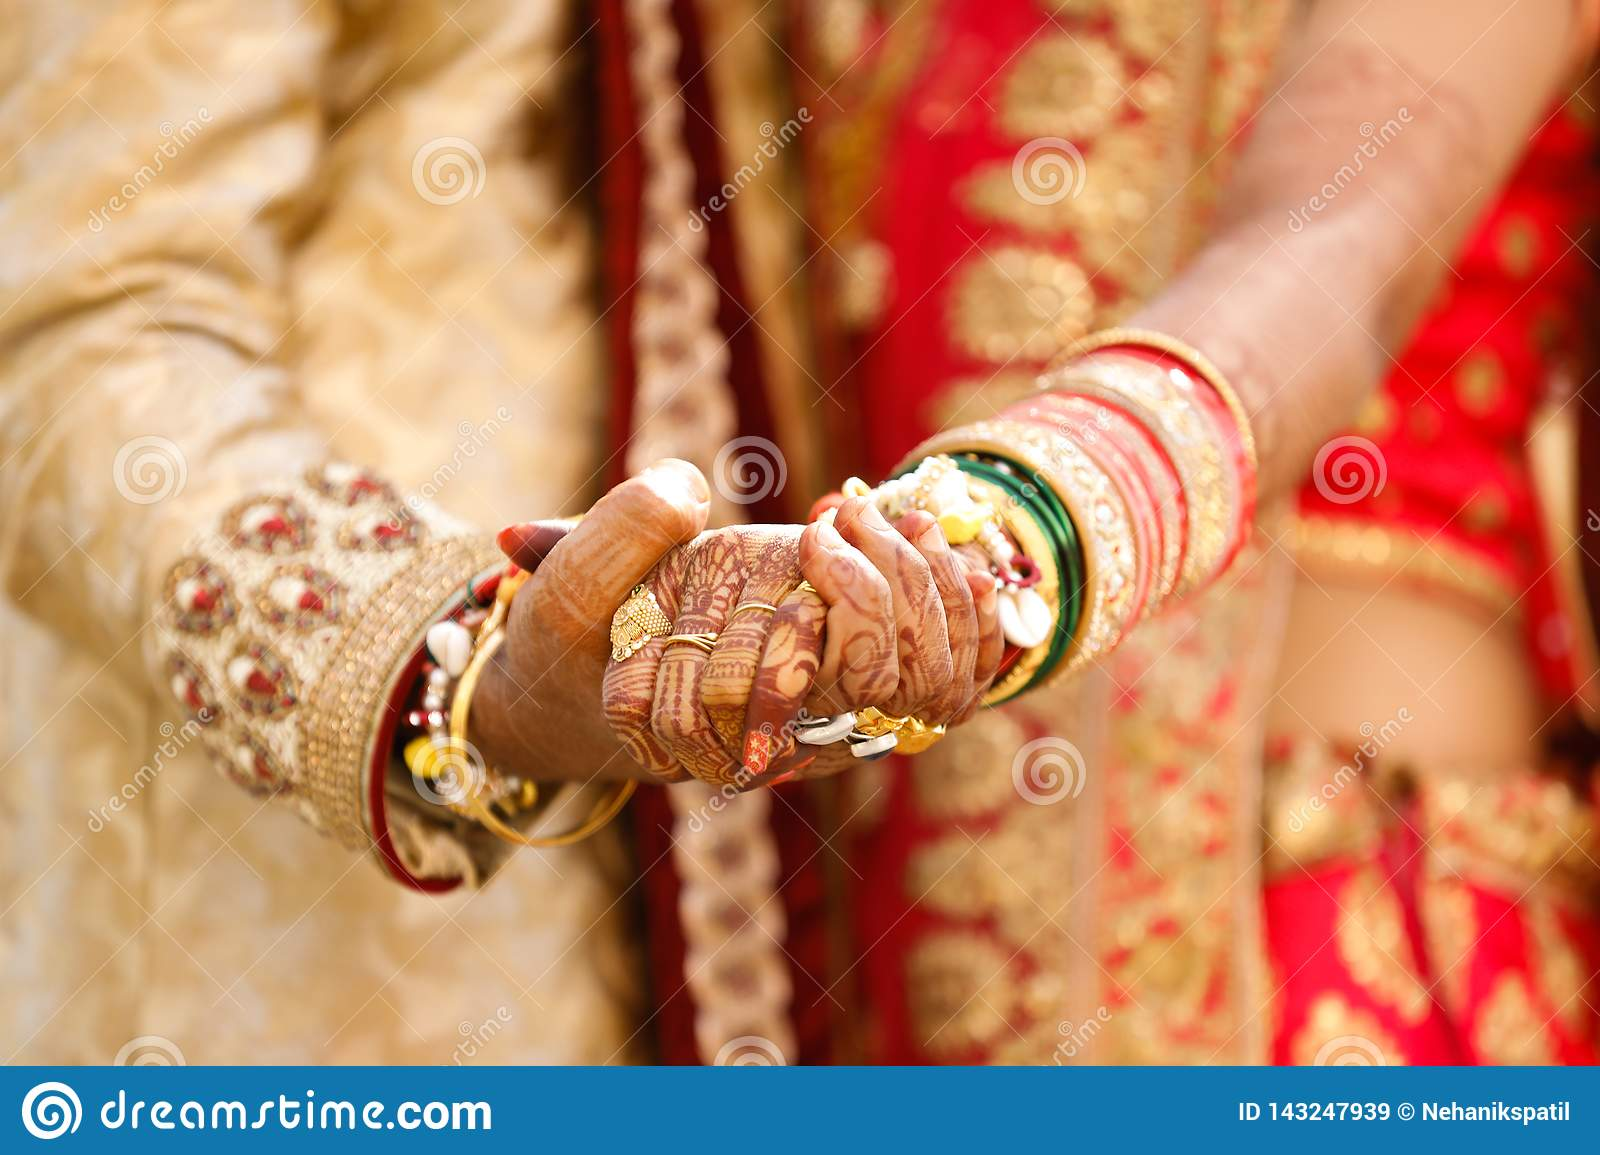 Indian Wedding Photography Groom And Bride Hands Stock Image Image Of Henna Hand 143247939